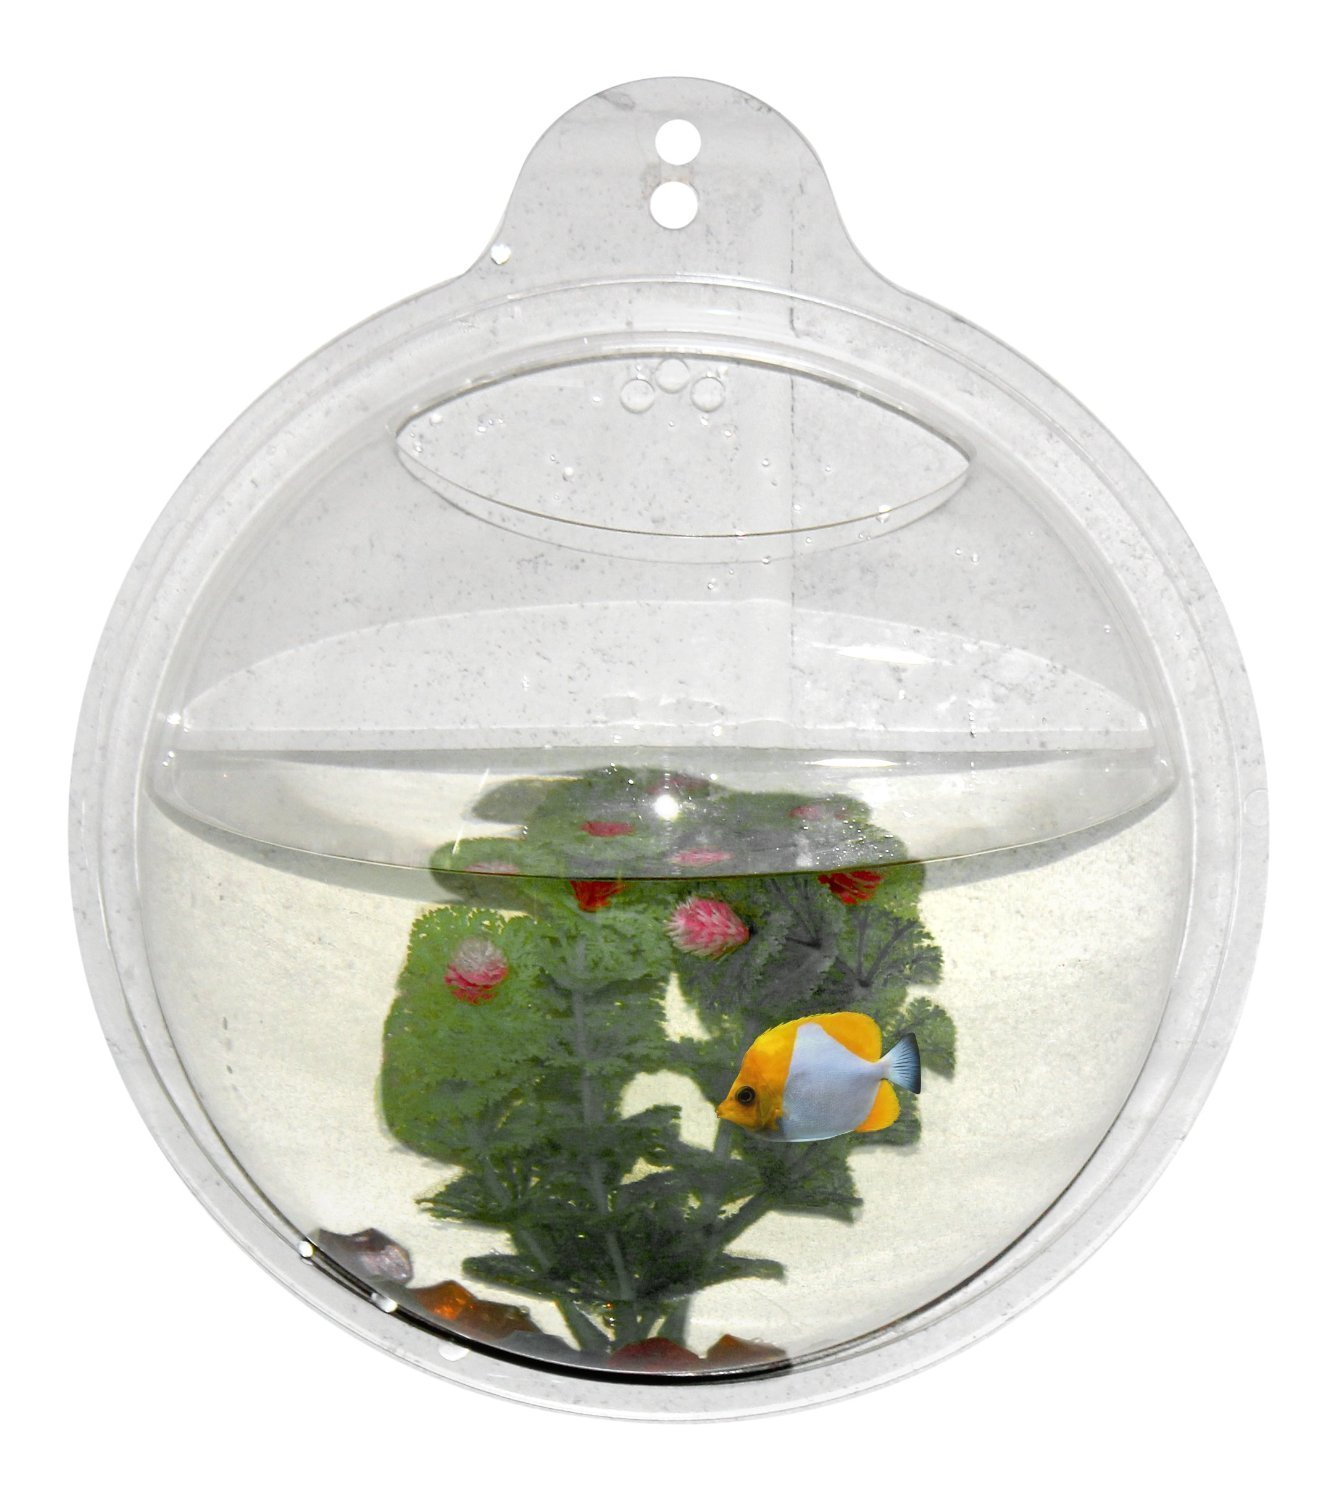 Fish aquarium price india - Buy Wrapables Wall Mount Hanging Beta Fish Bubble Aquarium Bowl Tank Online At Low Prices In India Amazon In